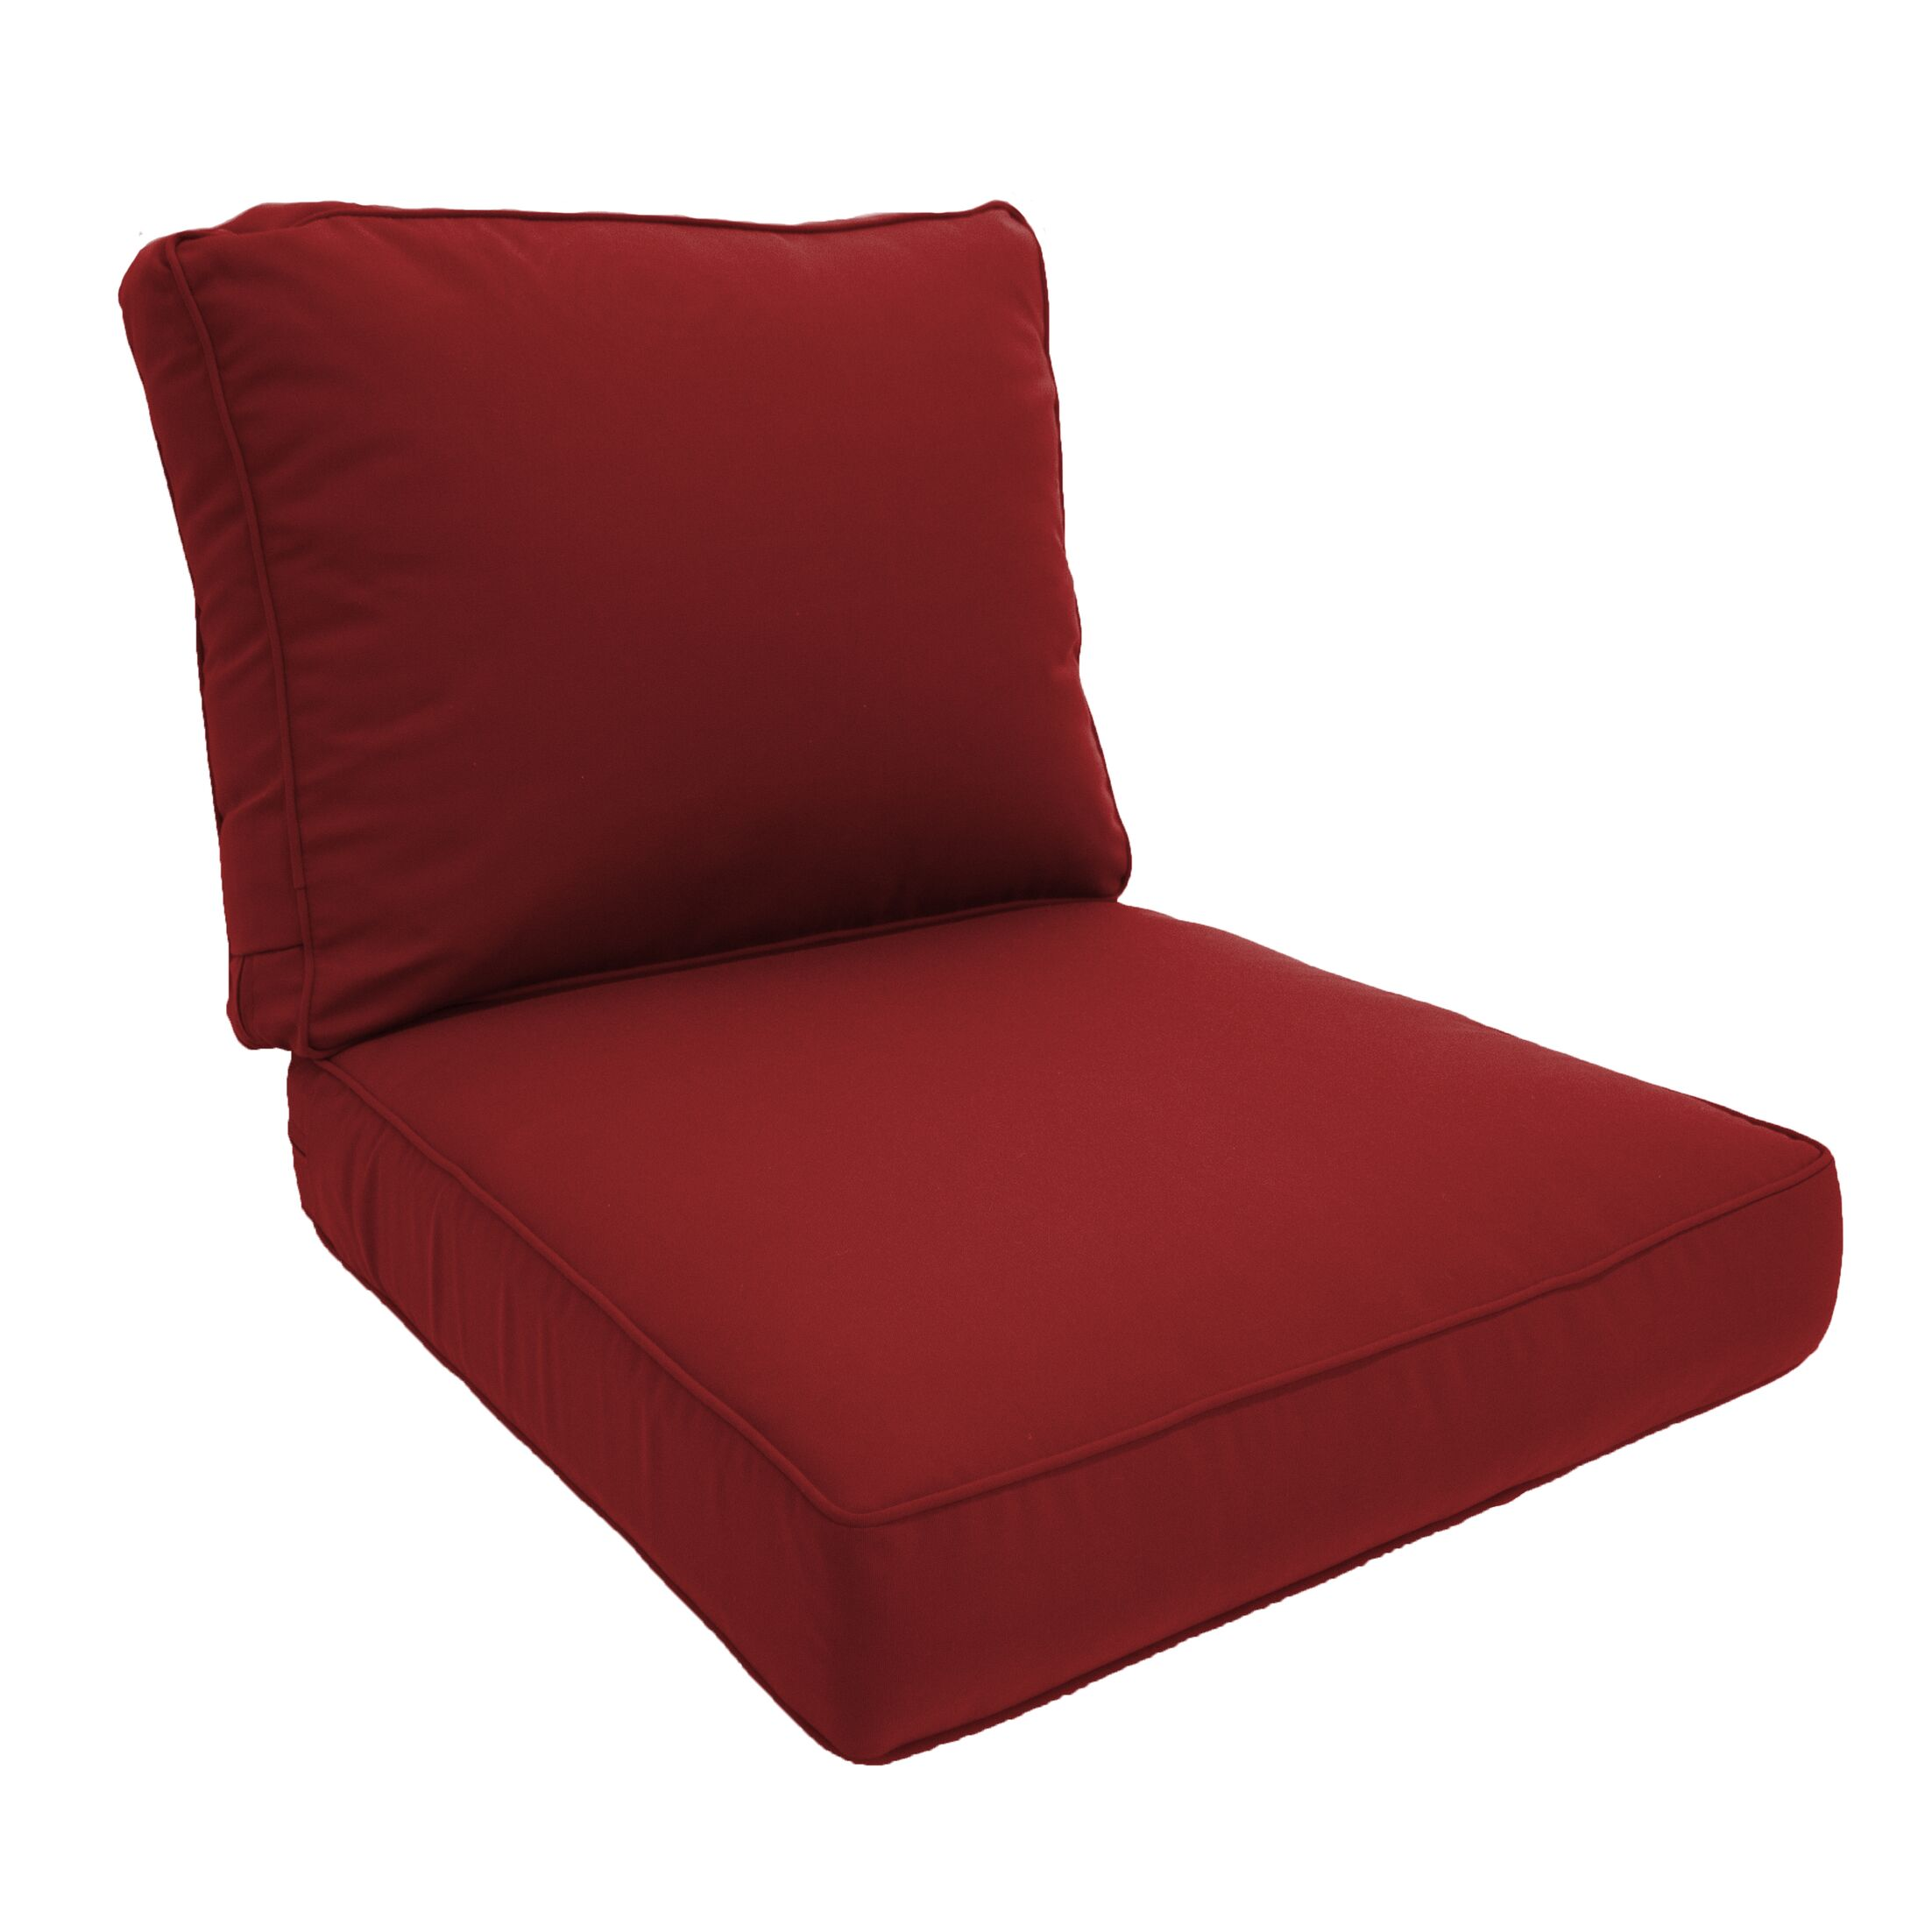 Double Piped Lounge Chair Cushion Fabric: Jockey Red, Size: Small